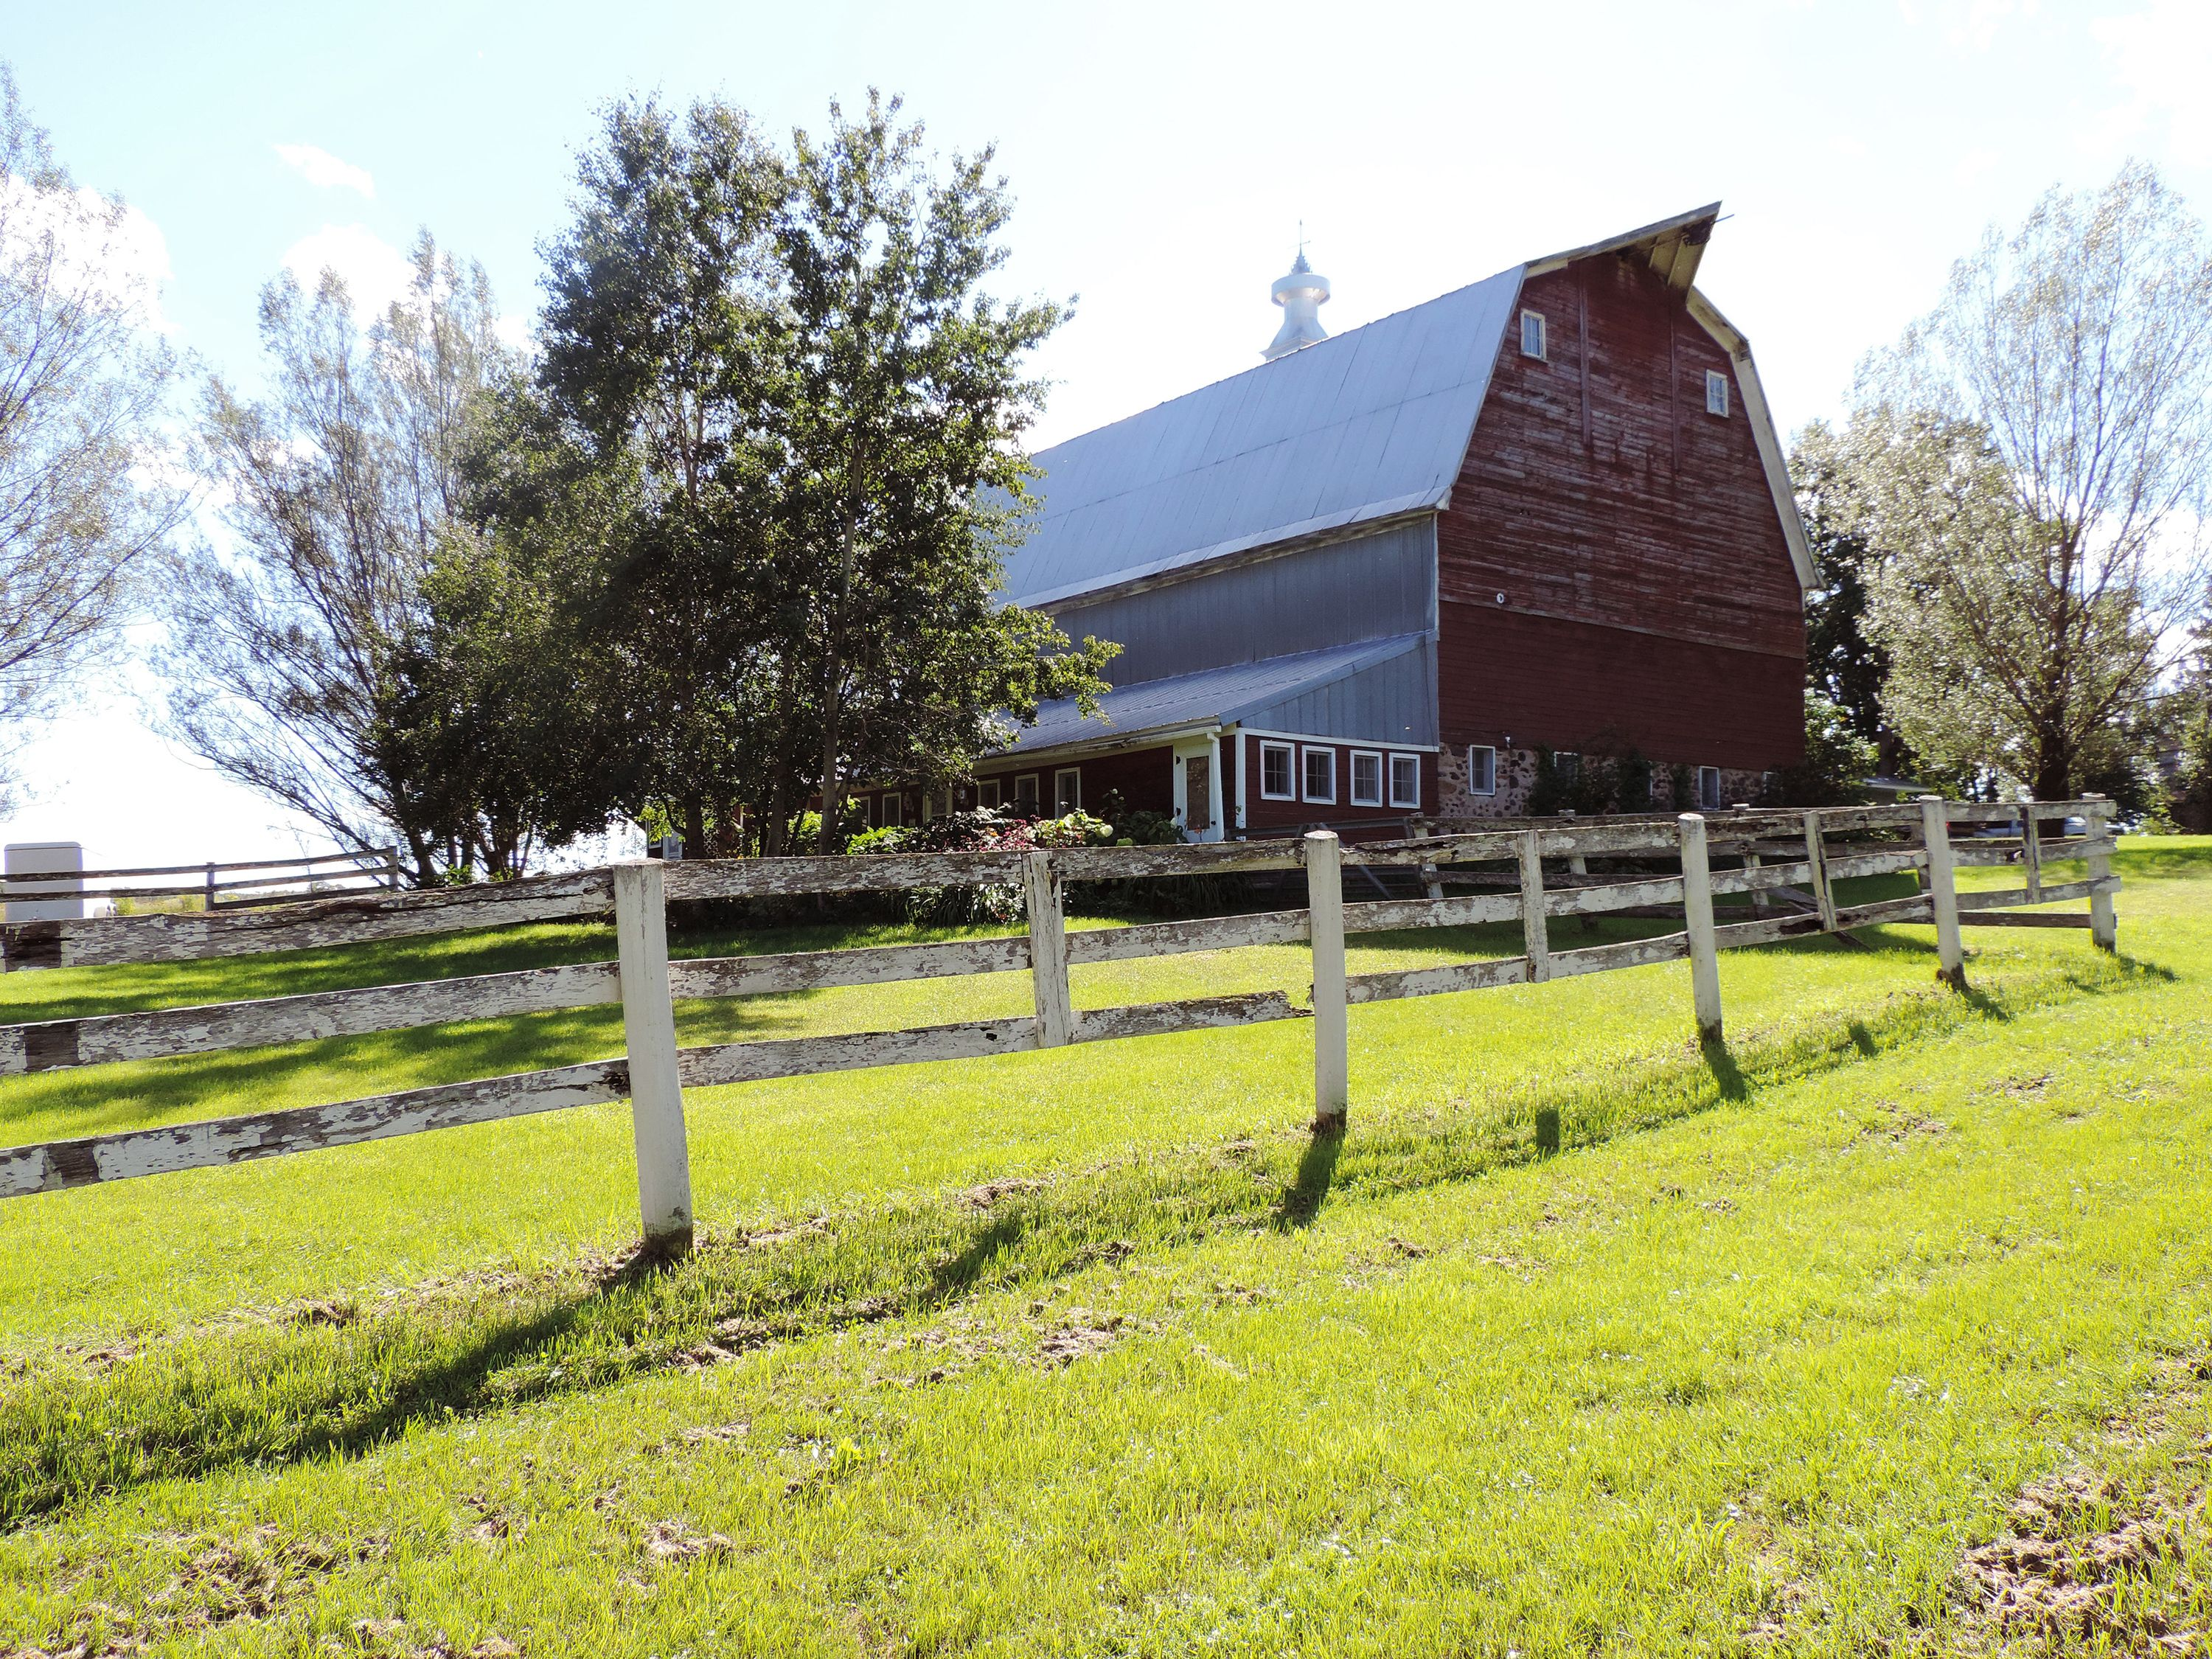 """<p>There's a silo attached to this ca. 1921 barn, which features a prominent widow's peak and sits on 30 partially-wooded acres. The stately structure could be the ultimate live/work space—it was previously used as a gift shop.</p><p><strong>Asking Price:</strong> $114,900</p><p>For more information, contact Kyle Pierce, (715) 416-2900 or visit <a href=""""http://www.nwlandandrec.com/"""">Northwest Land & Recreation</a>.</p>"""